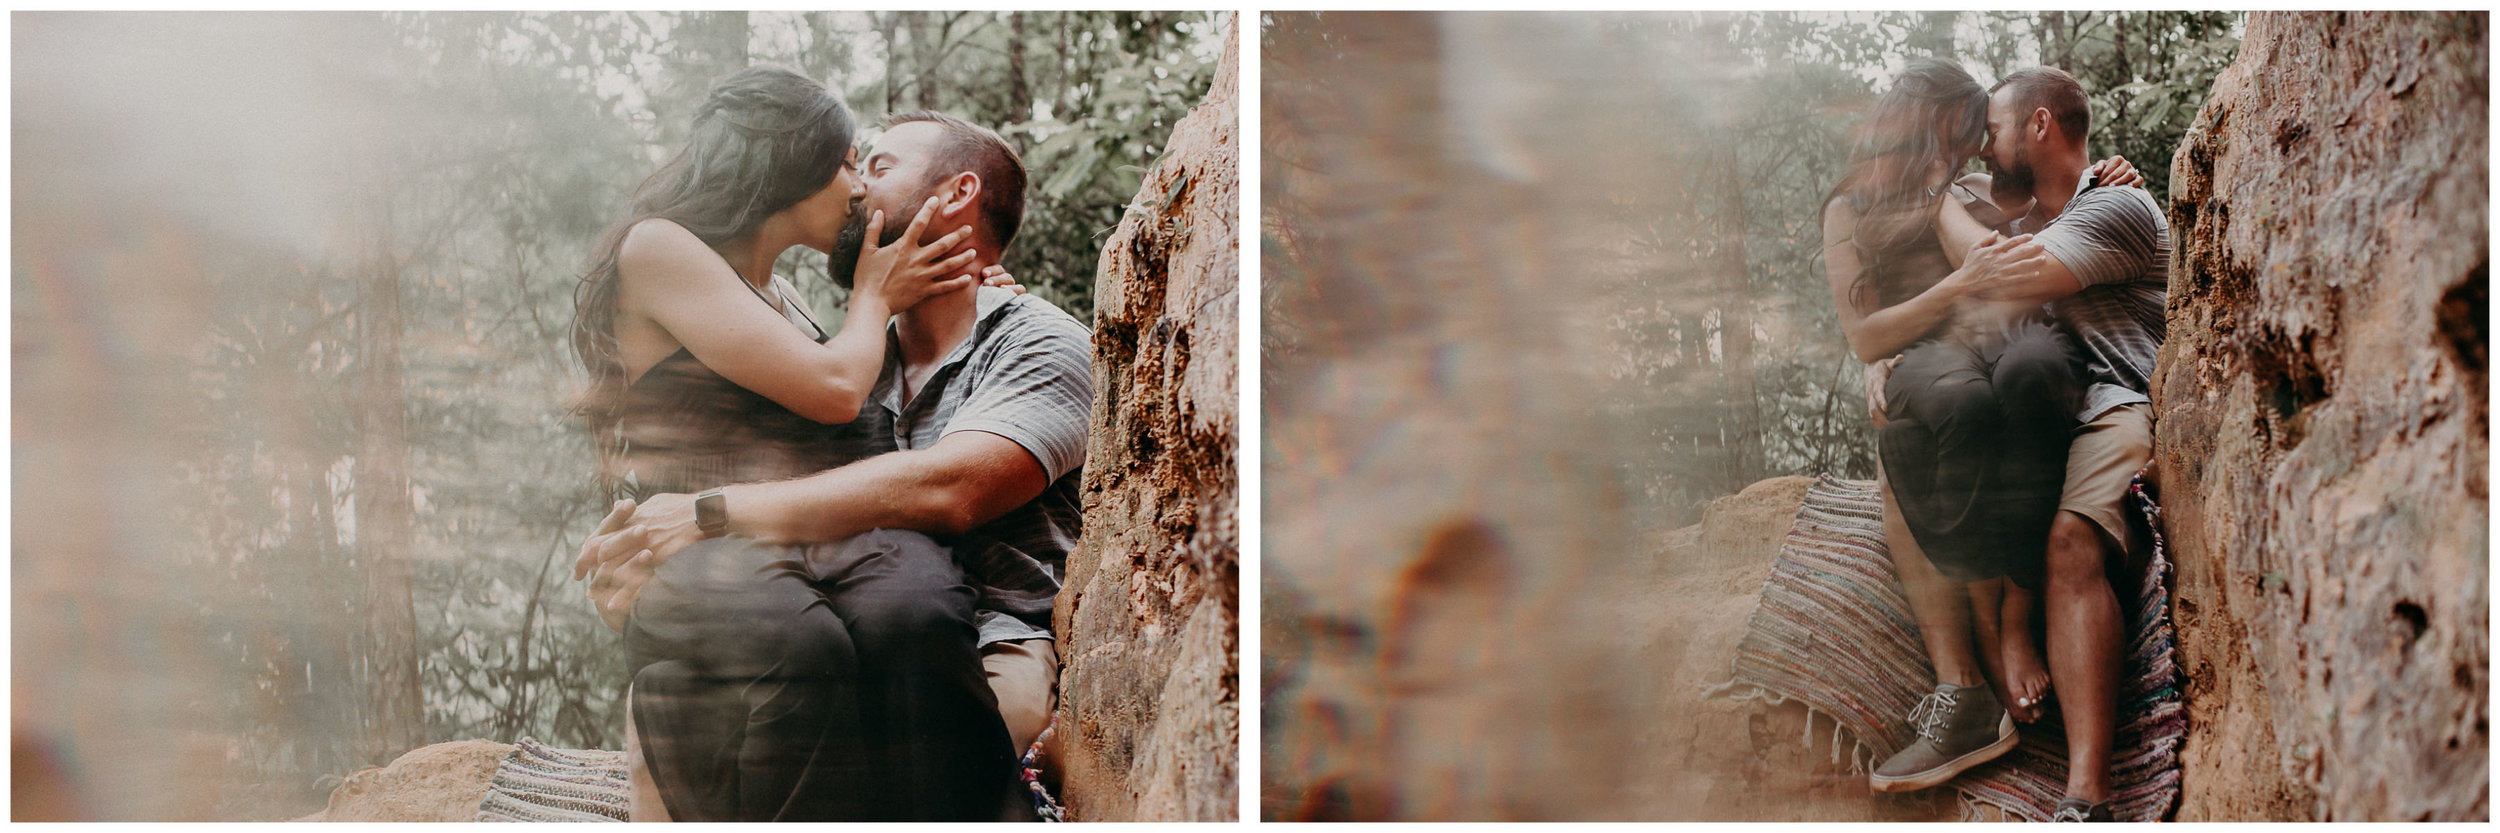 20- providence canyon georgia -engagement-session-atlanta-wedding-photographer, Aline Marin Photography.jpg